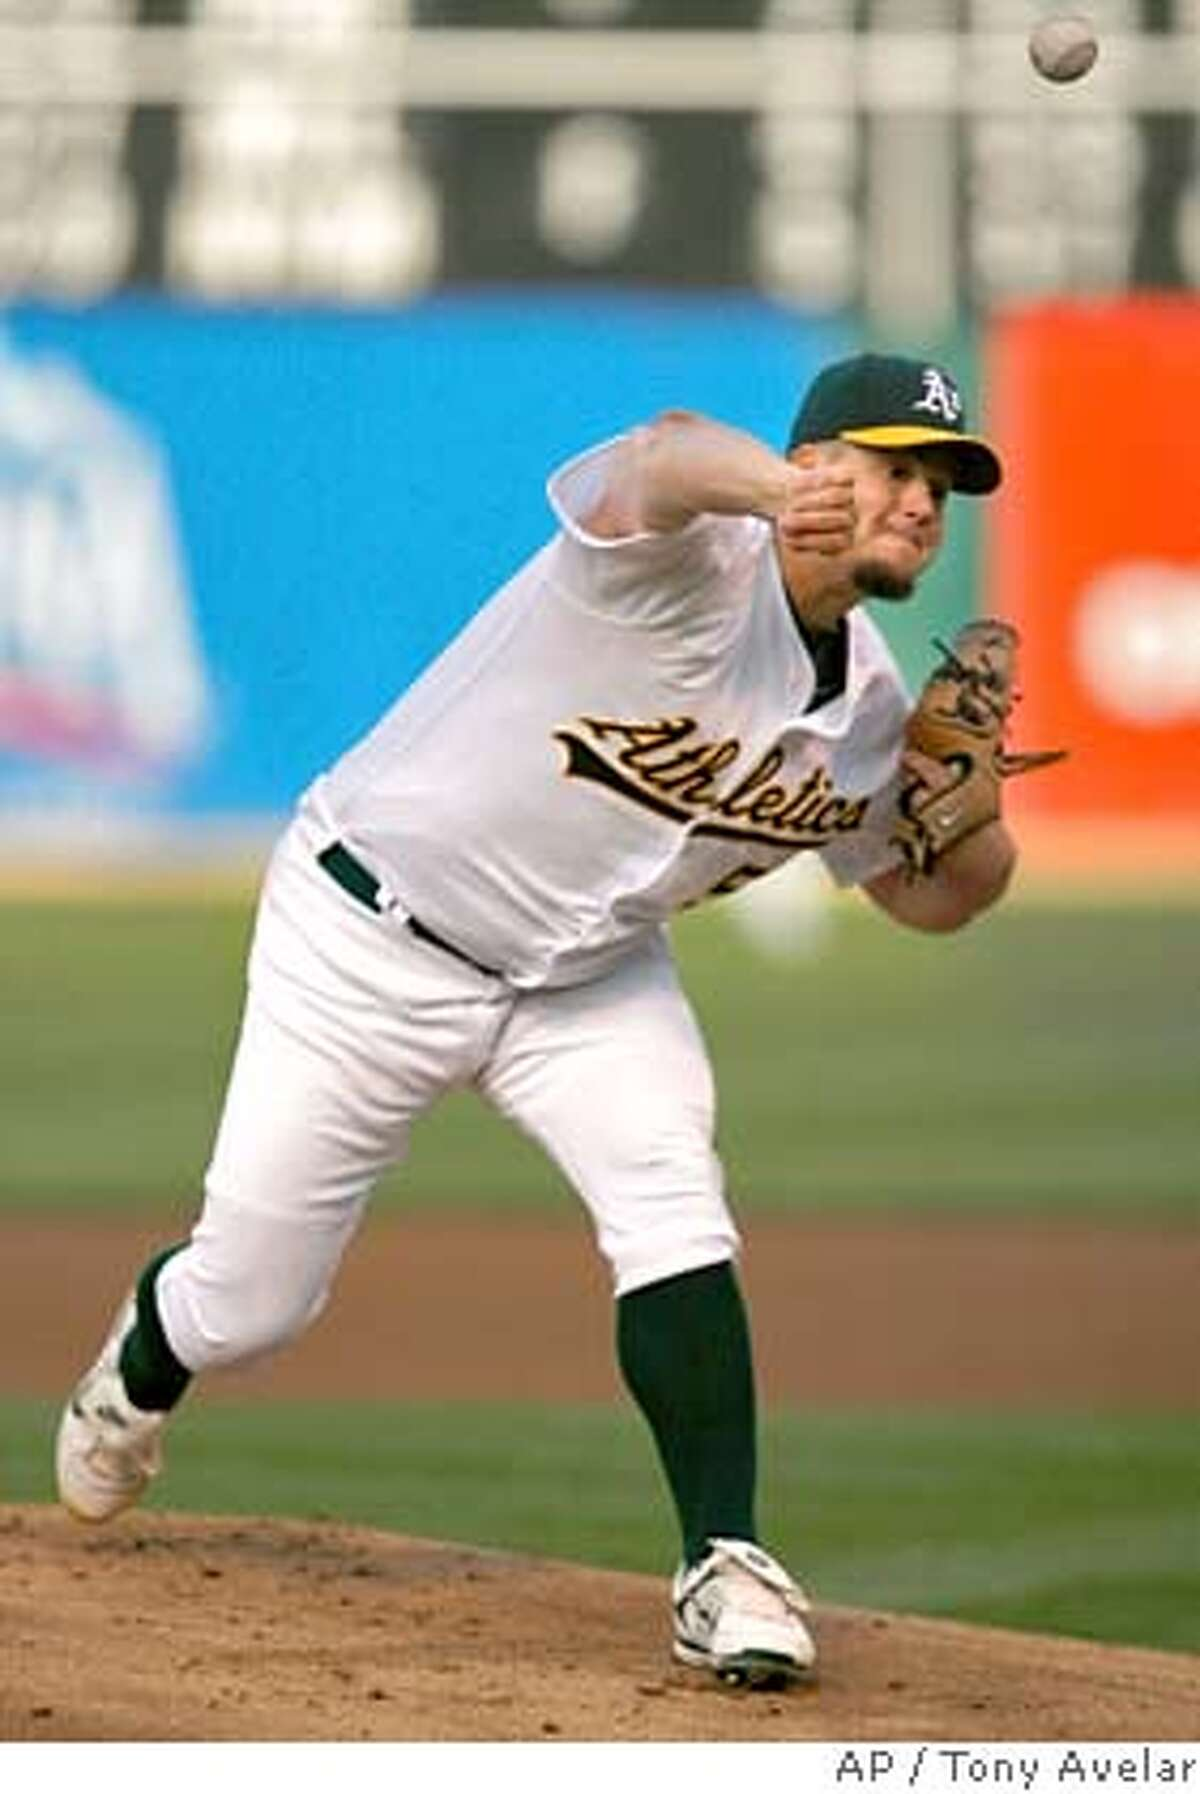 Oakland Athletics' Joe Blanton pitches to the Cleveland Indians in the first inning of a baseball game Friday, May 11, 2007, in Oakland, Calif. (AP Photo/Tony Avelar)